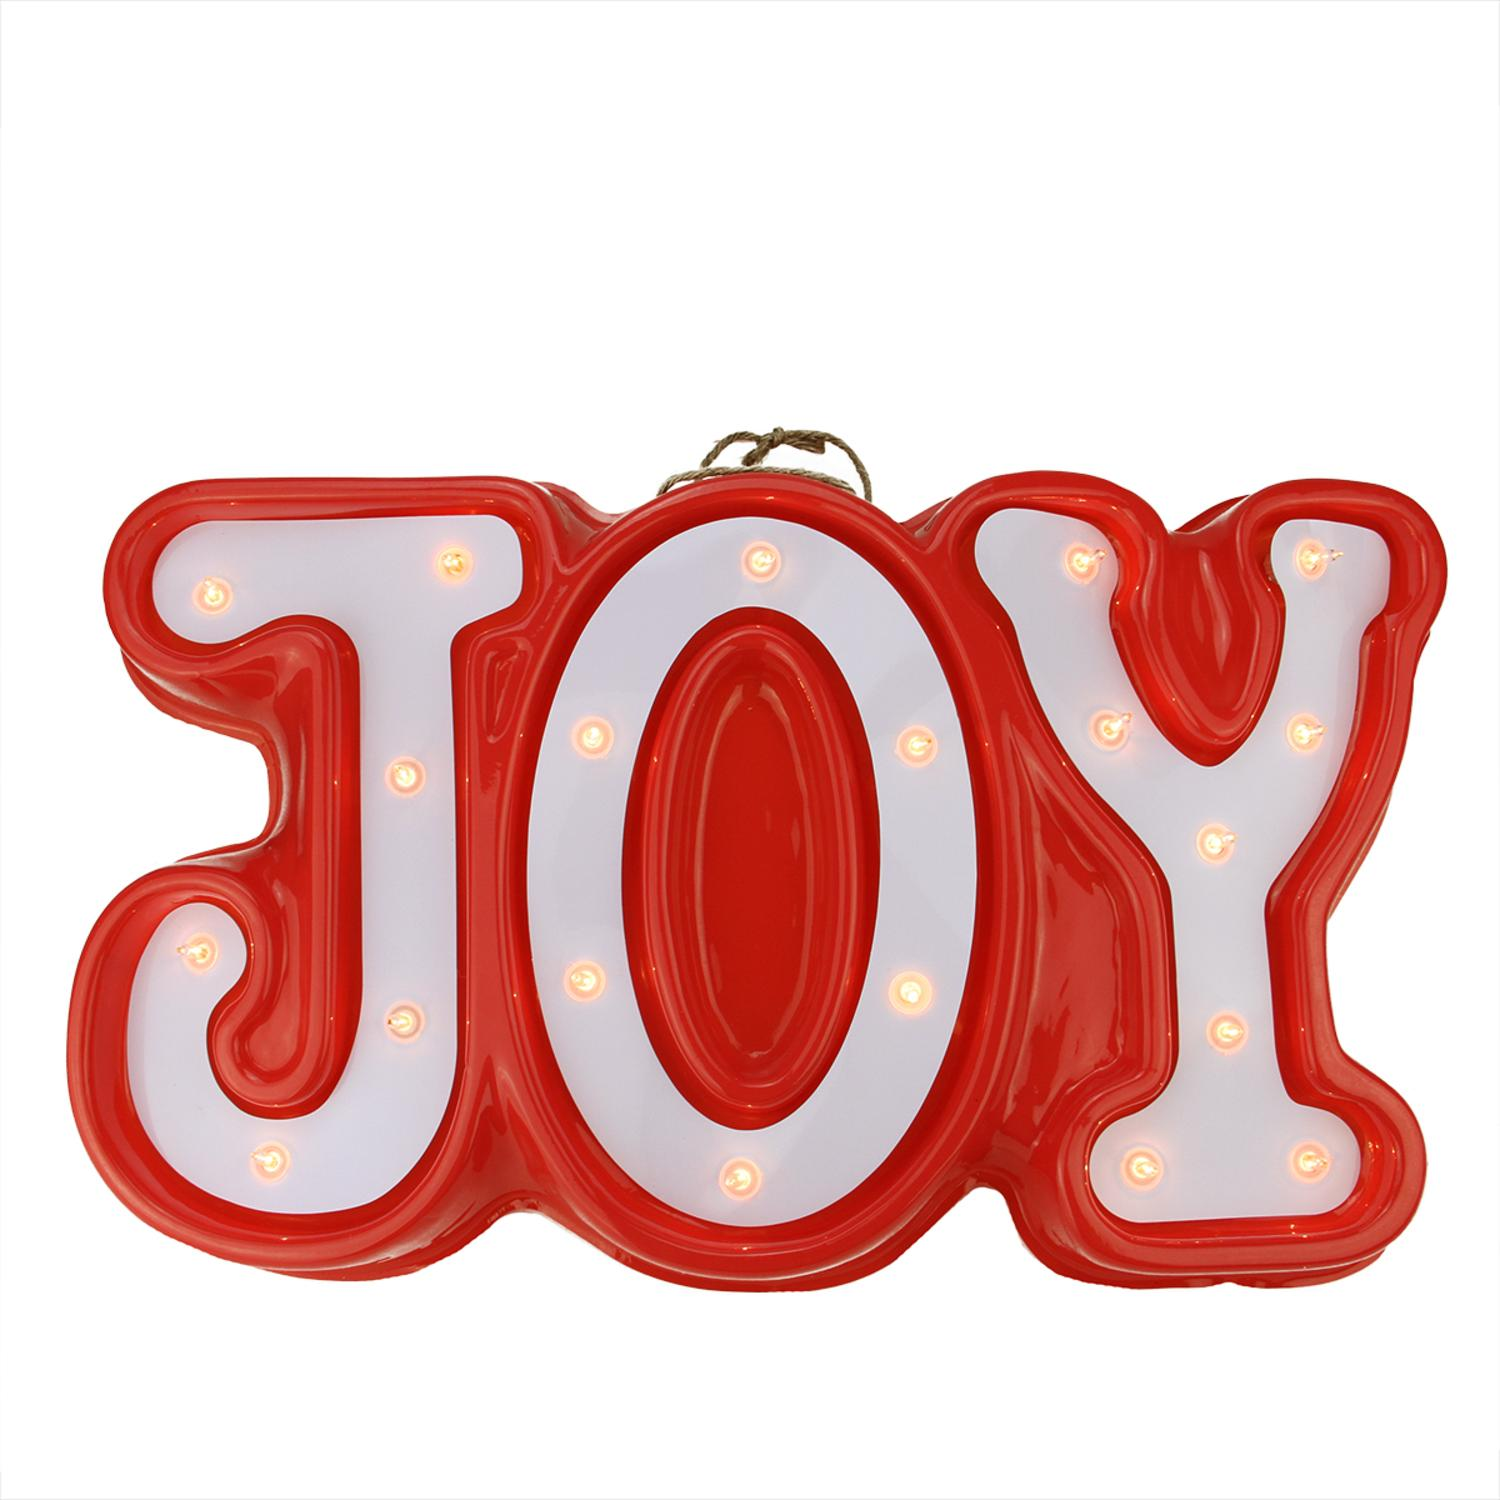 """19"""" Lighted Red and White """"JOY"""" Hanging Christmas Window or Wall Decoration by Northlight"""